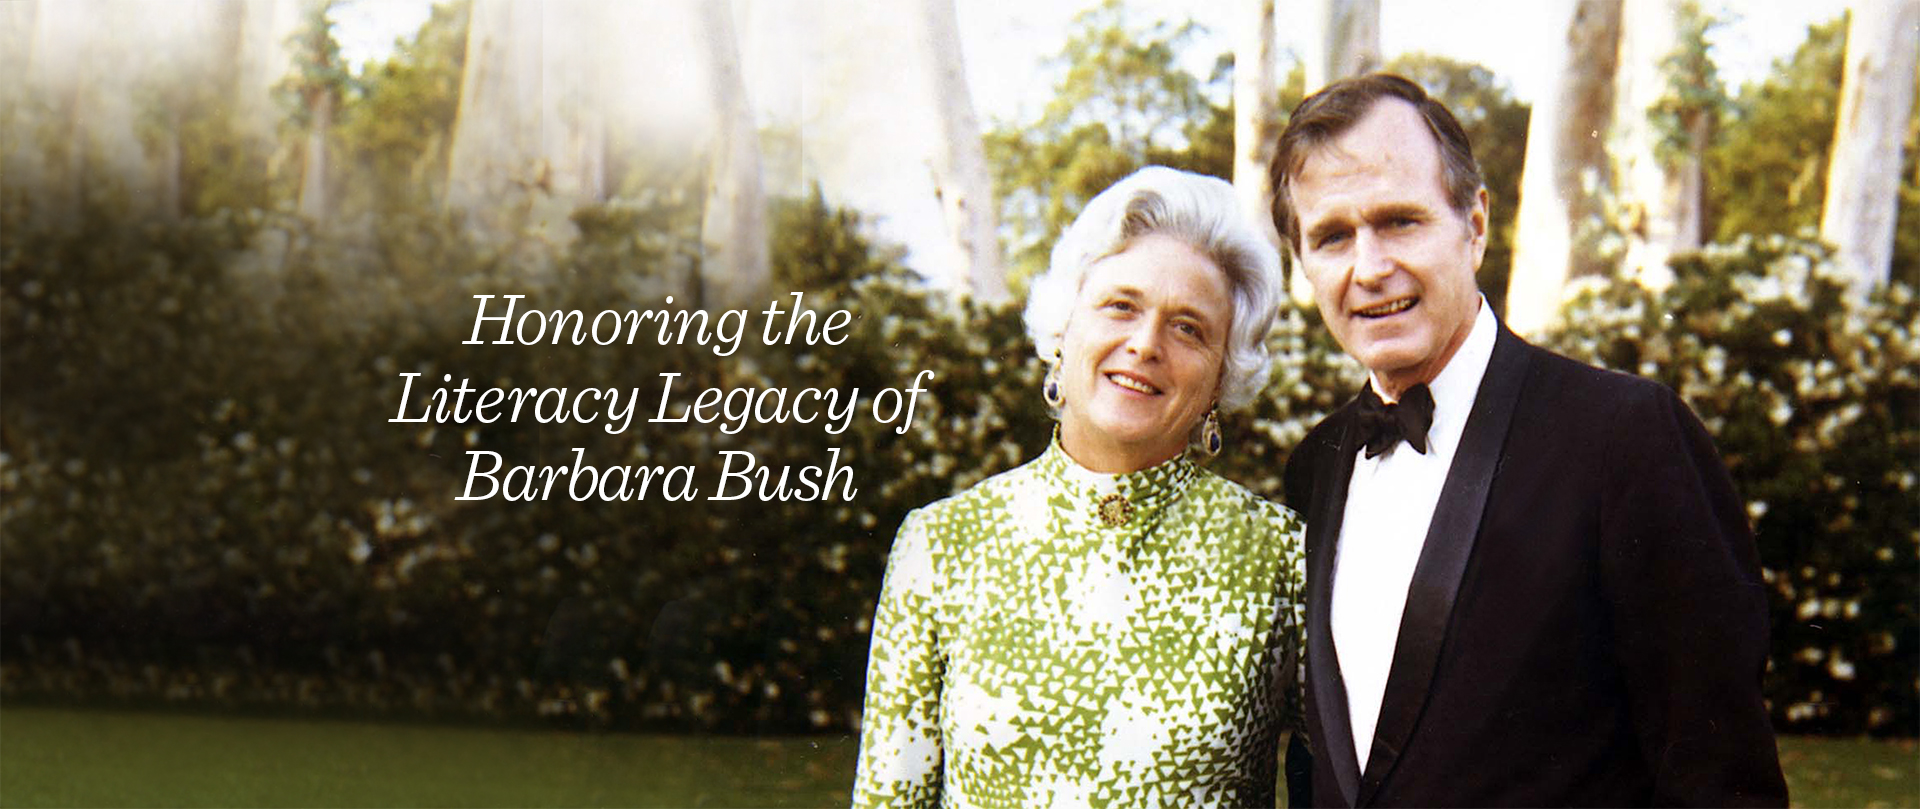 Barbara-Bush-Banner-web-4.jpg